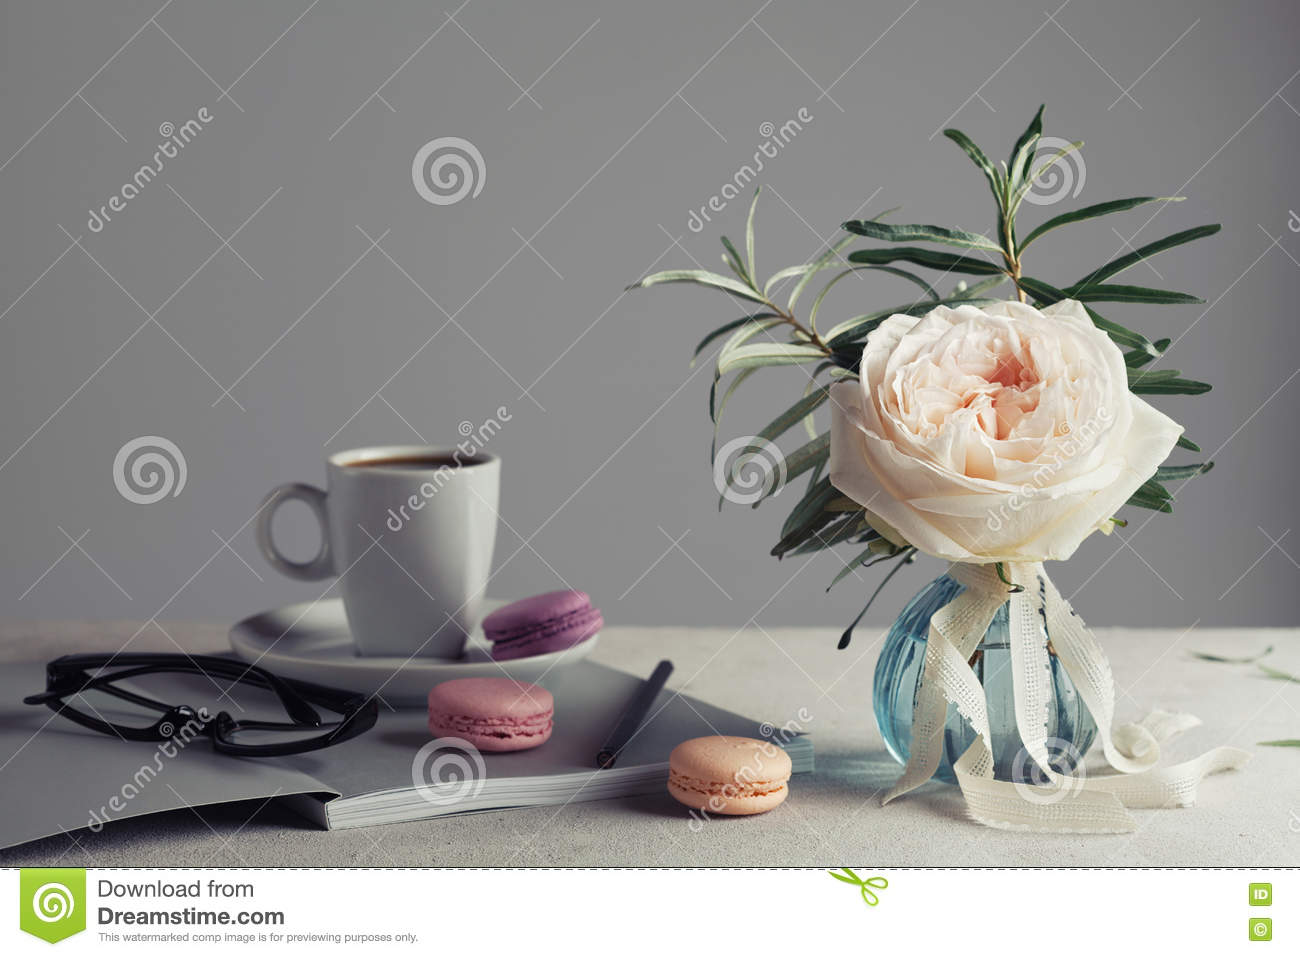 Morning still life with vintage rose in a vase, coffee and macarons on a light table. Beautiful and cozy breakfast.